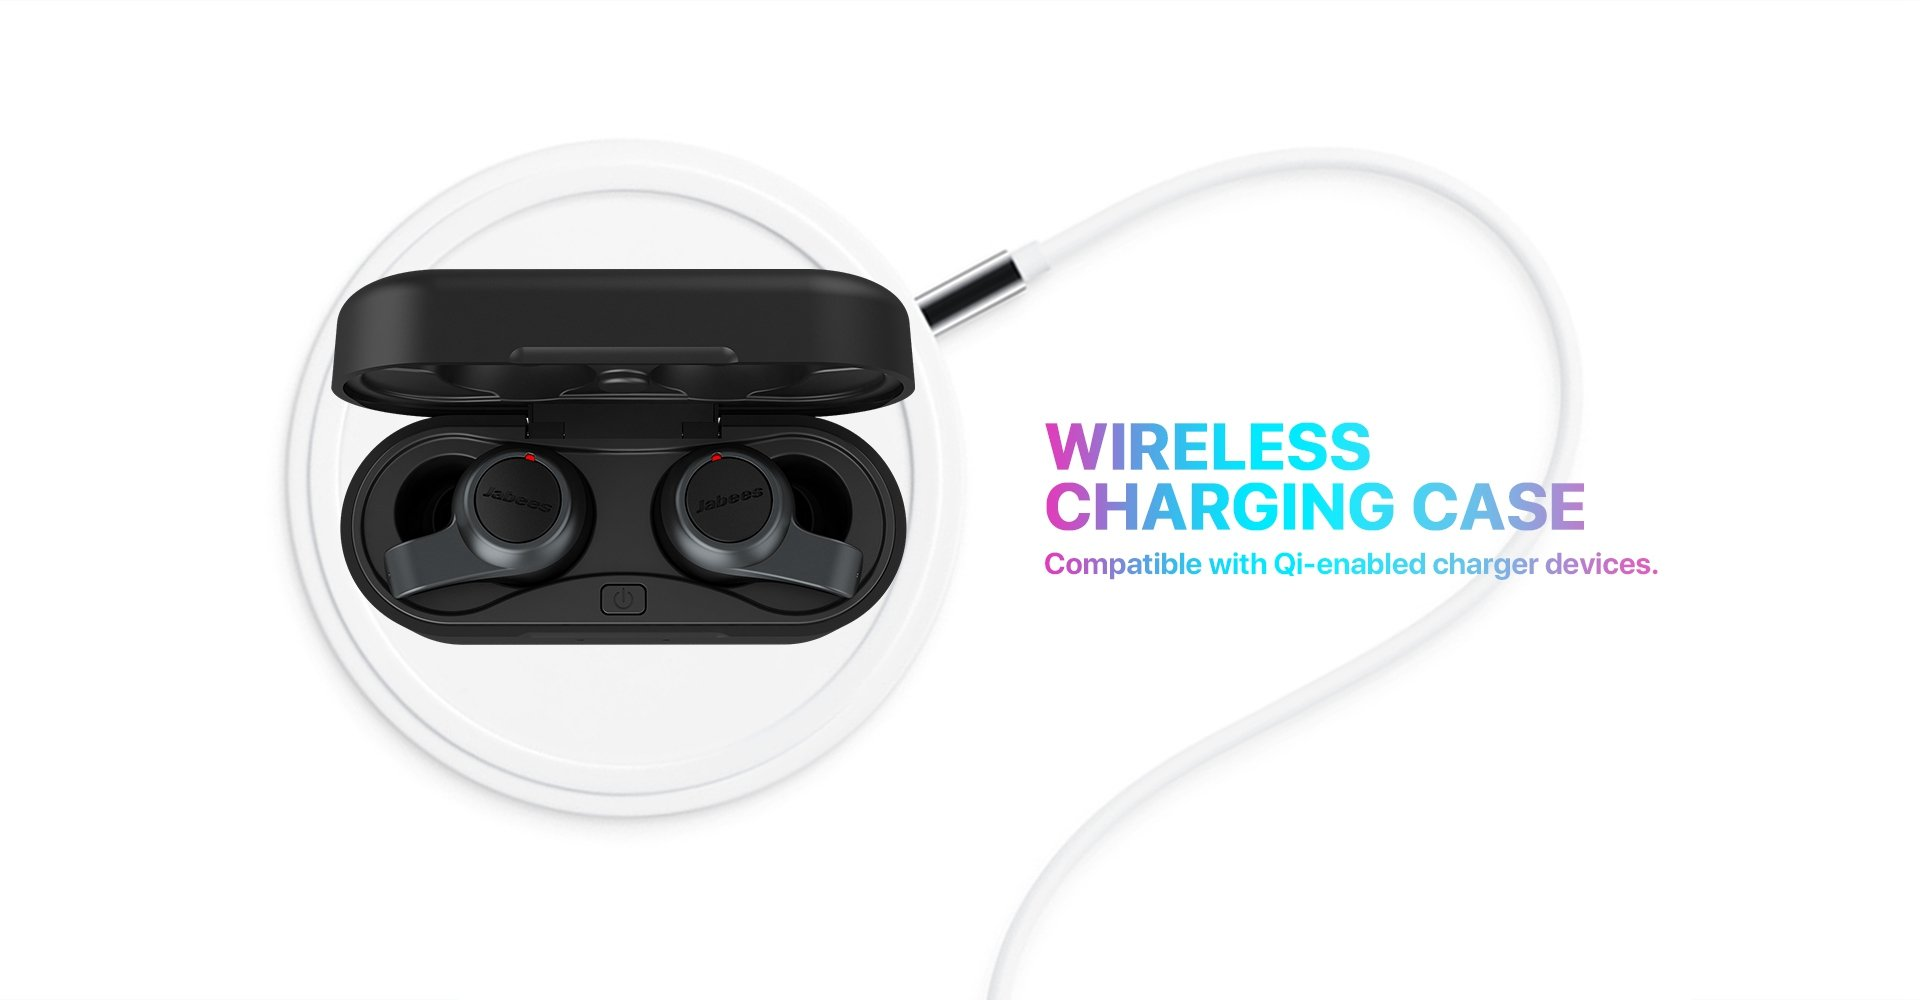 Jabees Firefly 2 Charcoal 12